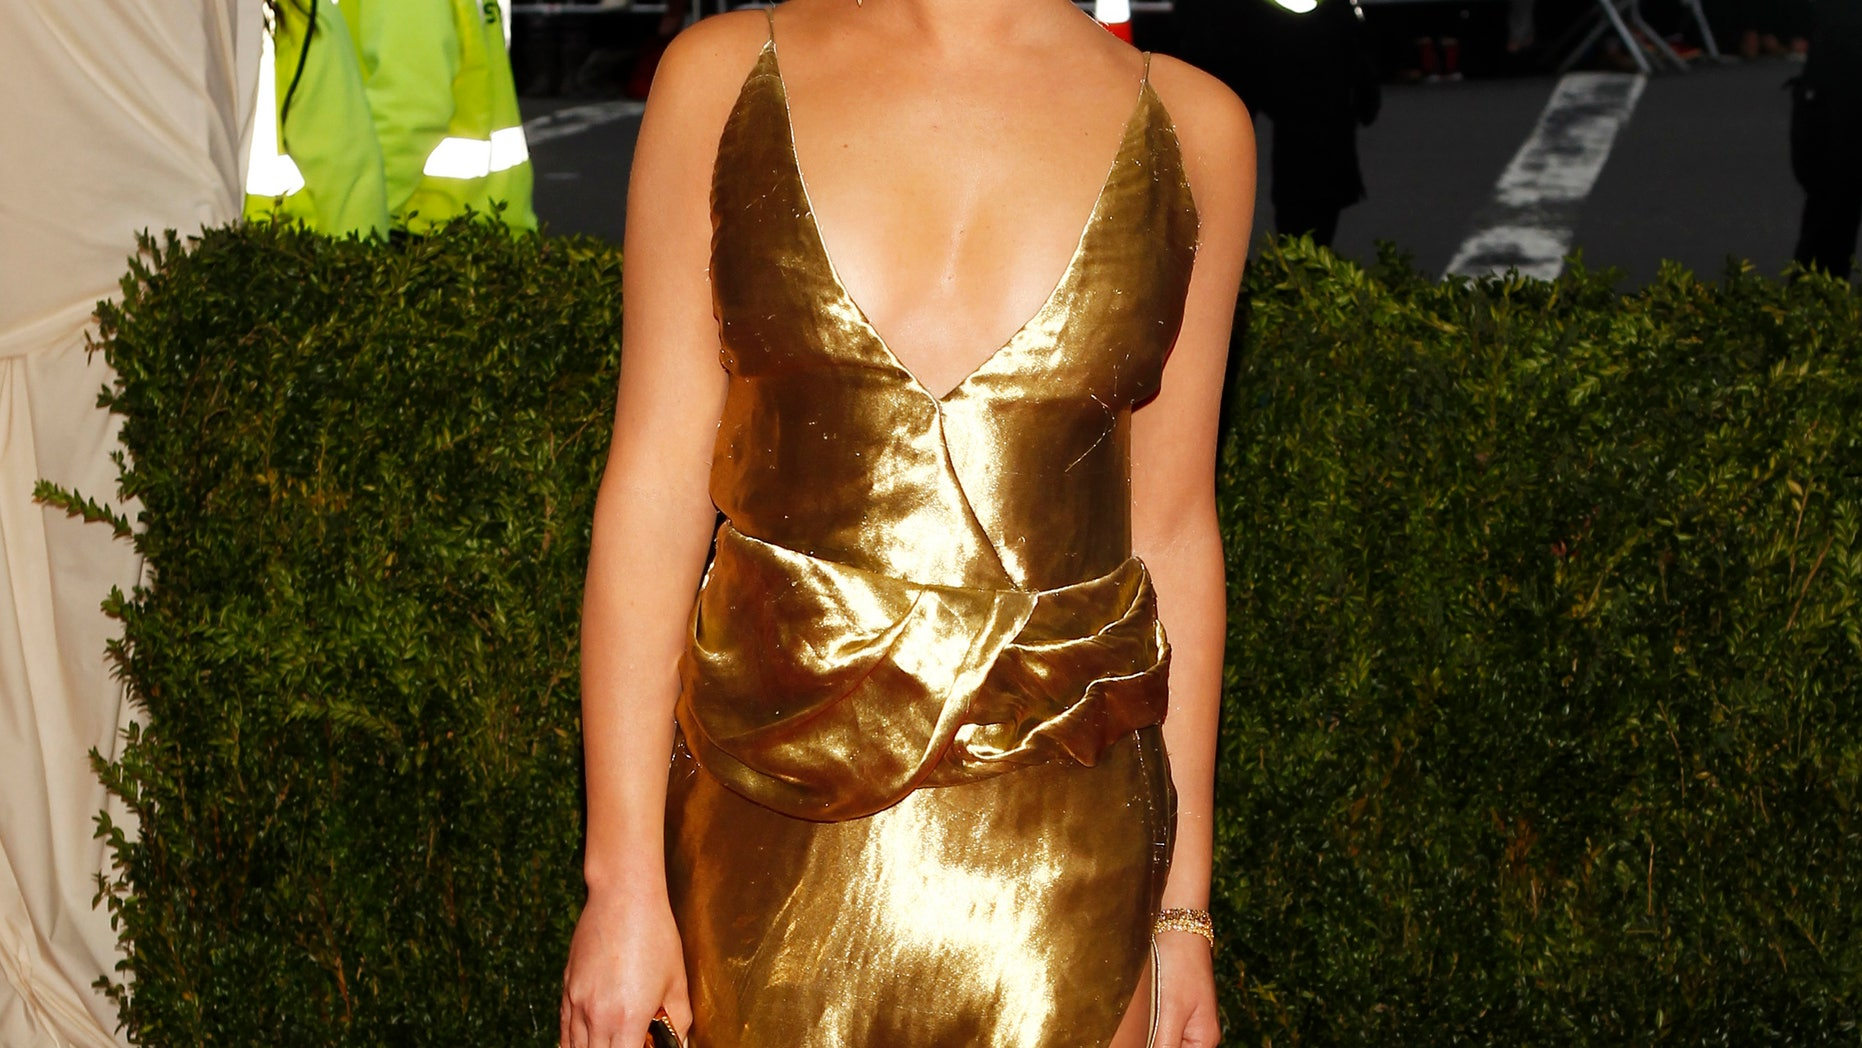 May 5, 2014. Actress Lea Michelle arrives at the Metropolitan Museum of Art Costume Institute Gala Benefit in New York.